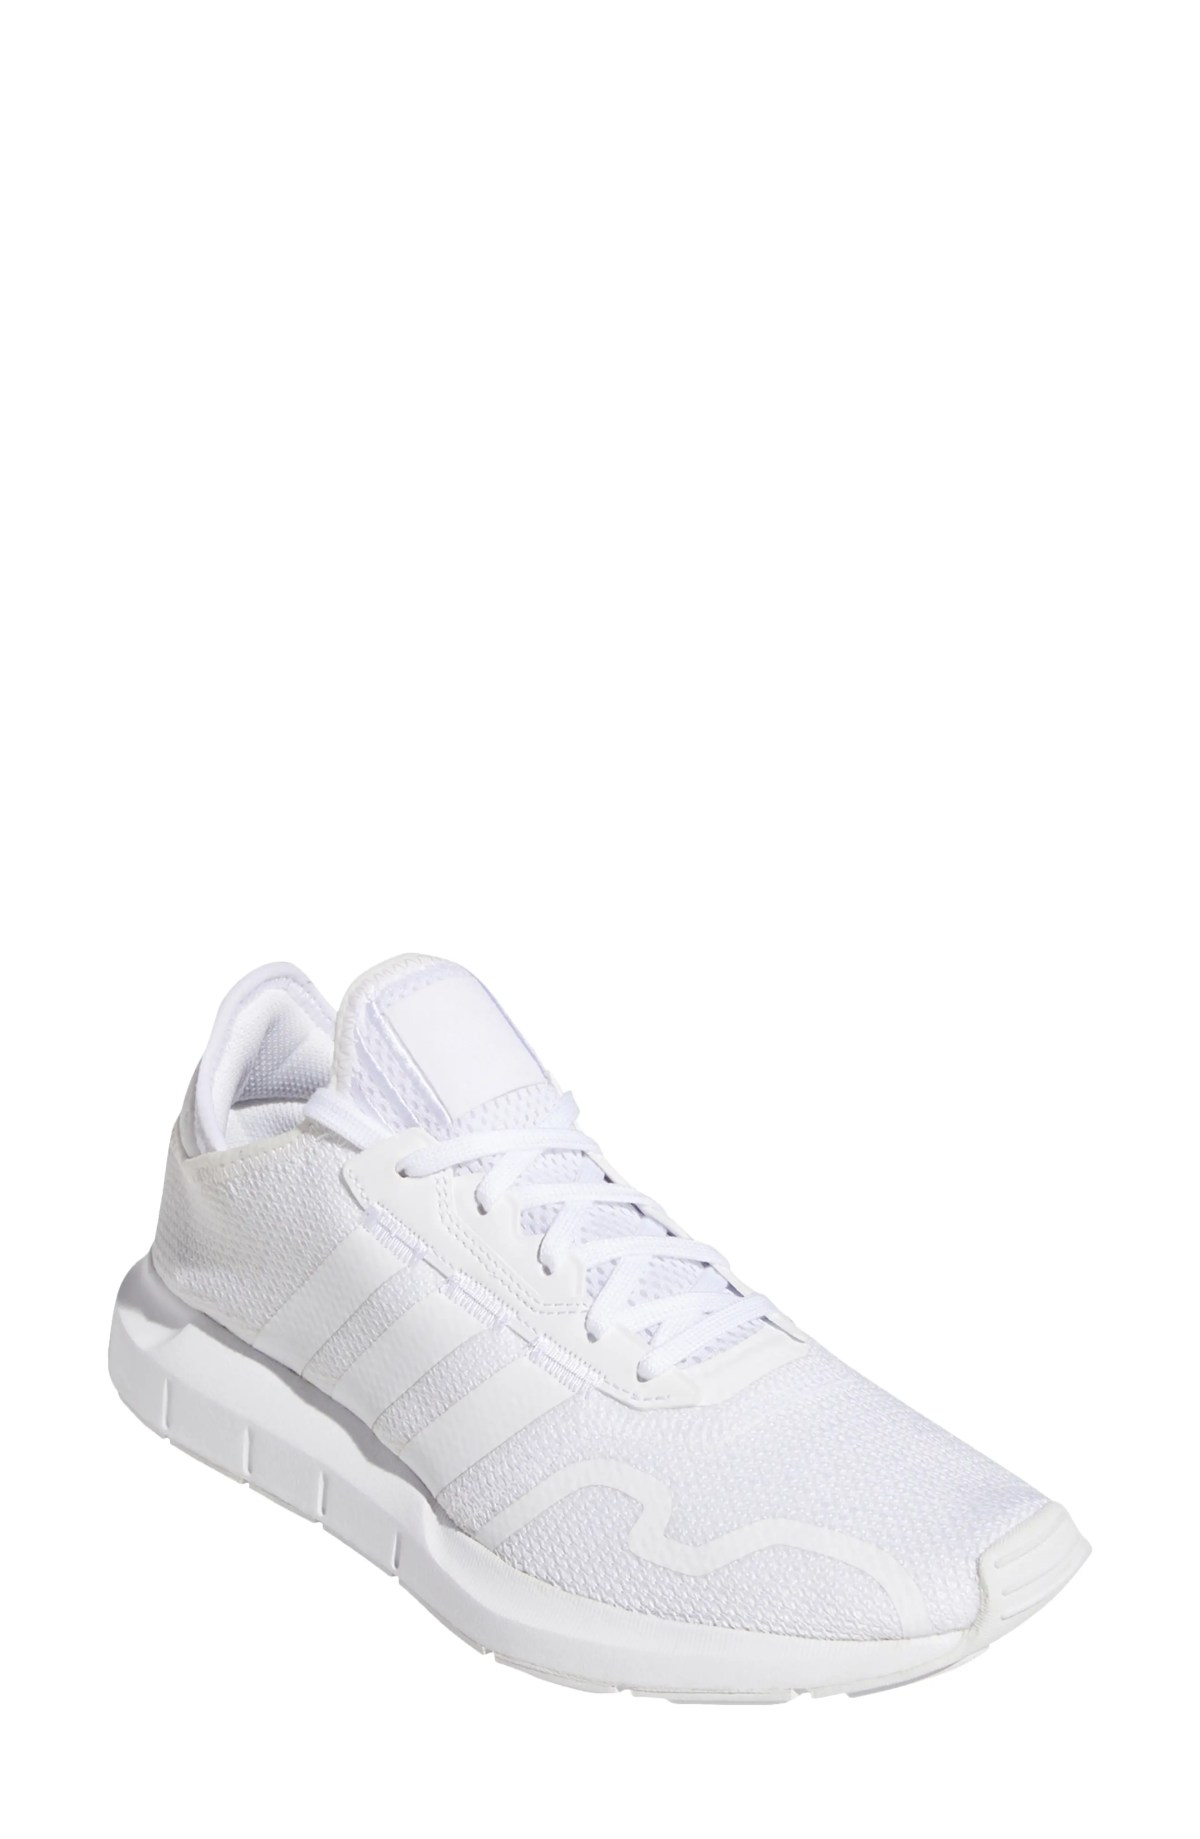 ADIDAS Swift Run X Sneaker, Main, color, WHITE/ WHITE/ WHITE